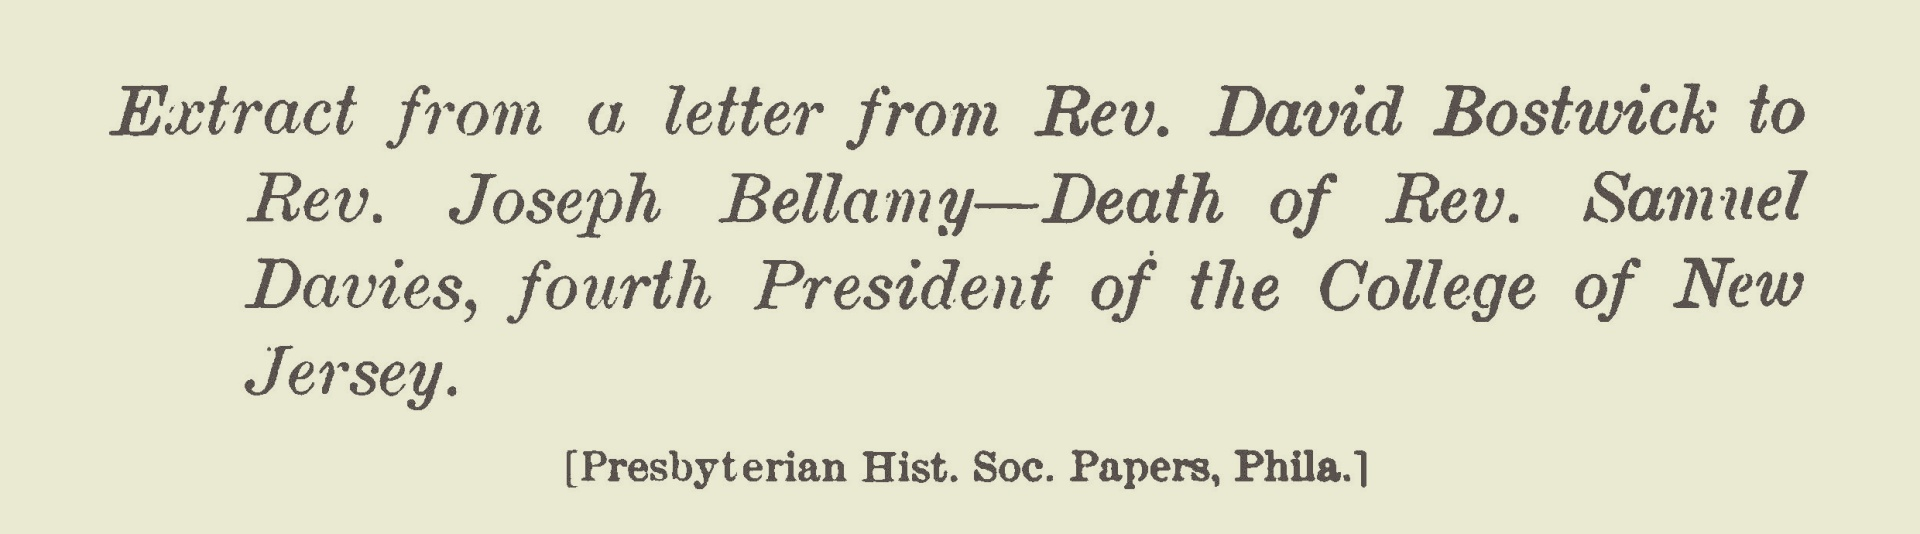 Bostwick, David, Extract of 1761 Letter to Joseph Bellamy Title Page.jpg